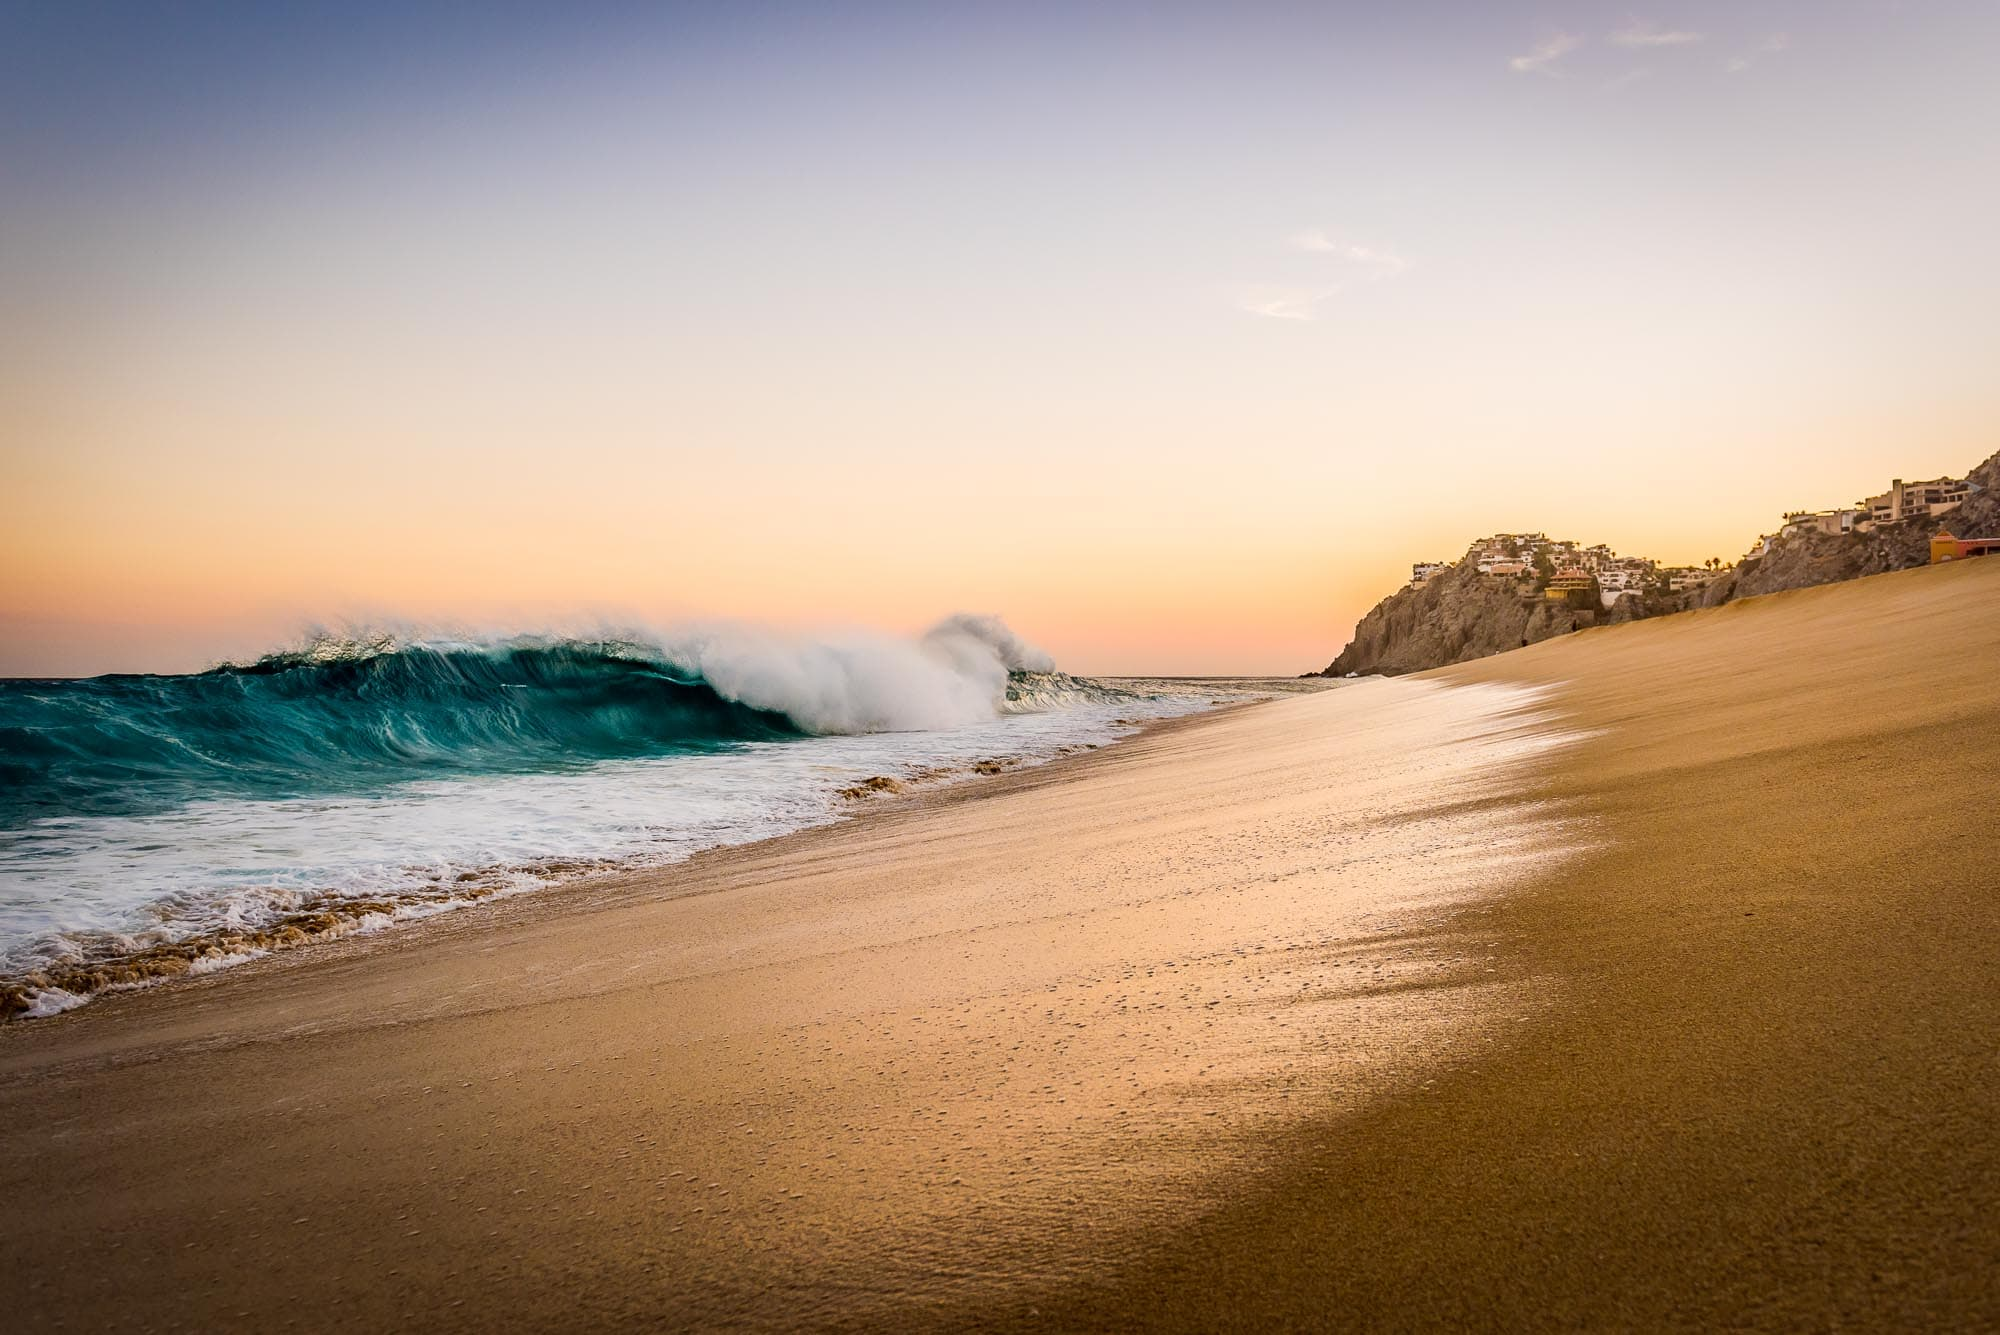 Colorful blue wave crashing during a painted sky sunset, looking the opposite way from Land's End in Cabo San Lucas